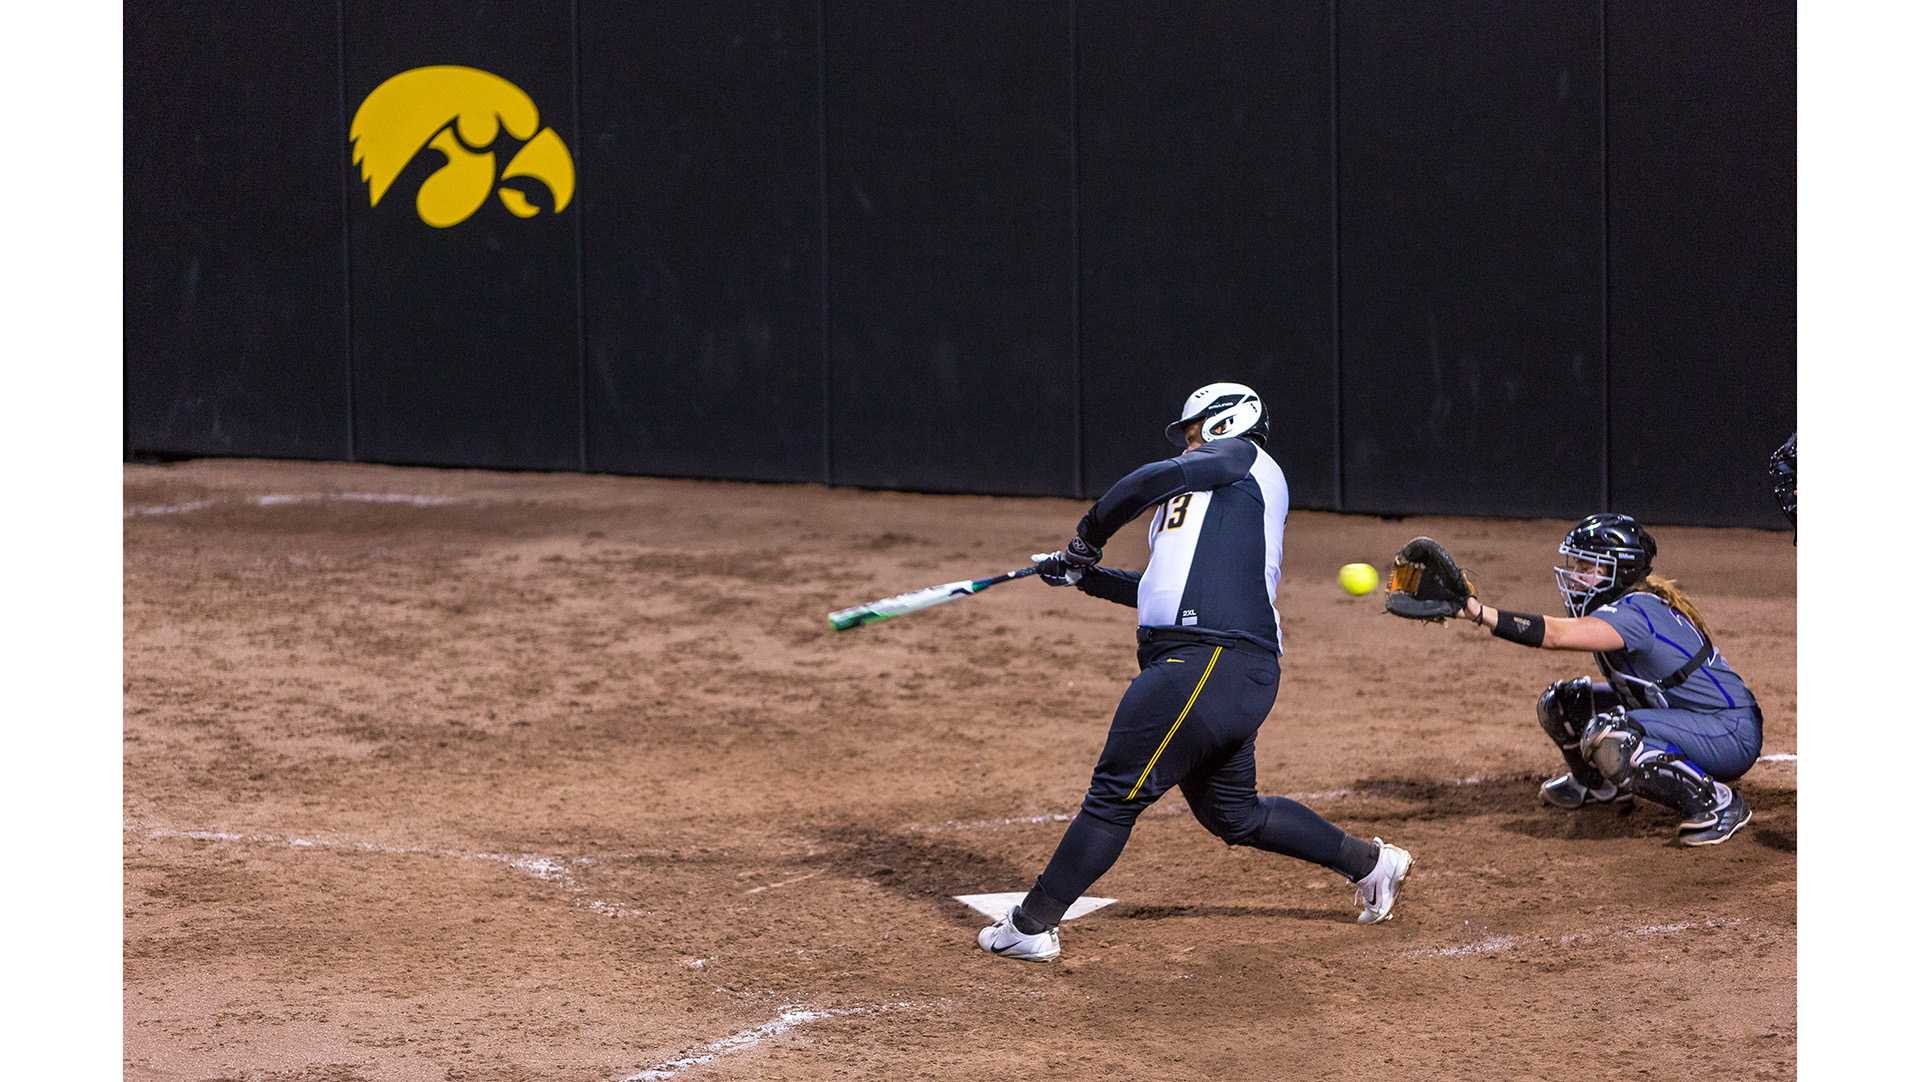 The wait to win is finally over for Iowa softball team